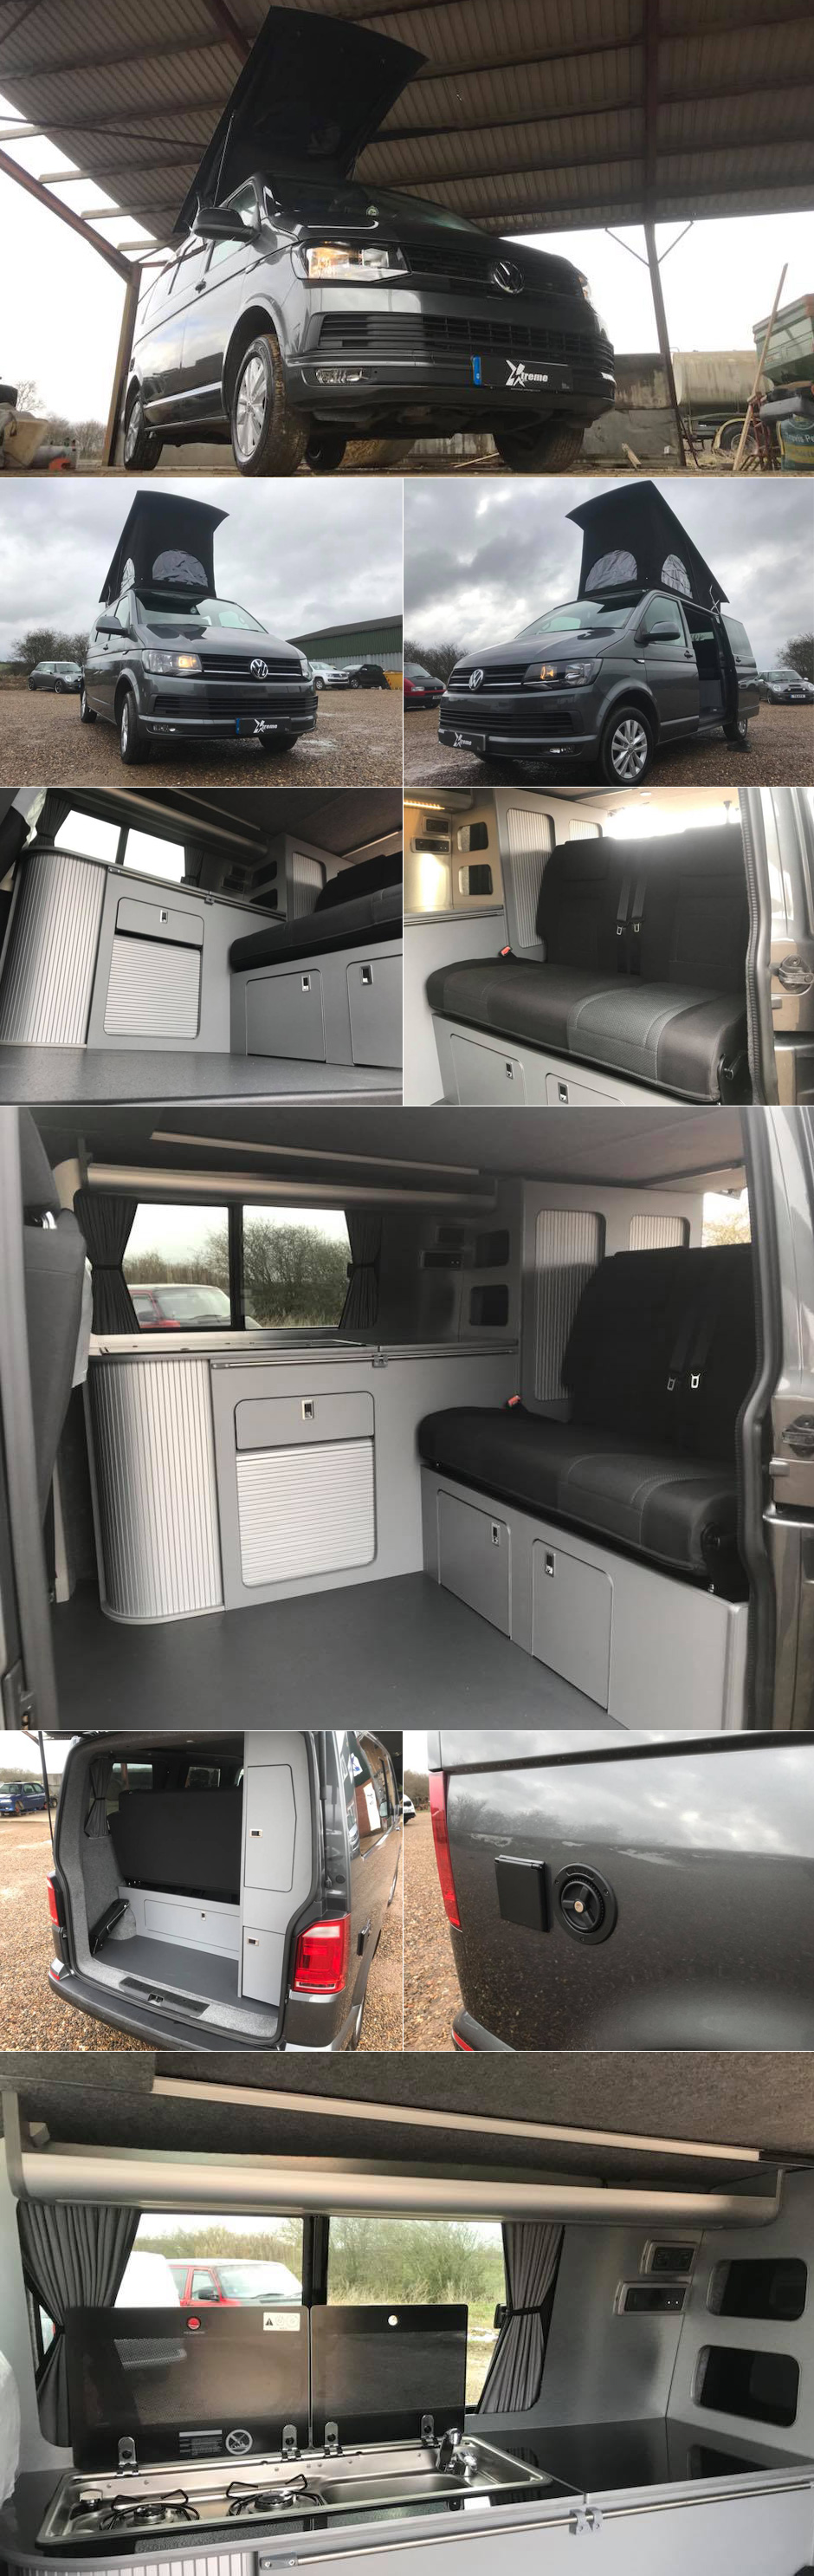 hiloroof fitters xtremevan vw t6 conversions